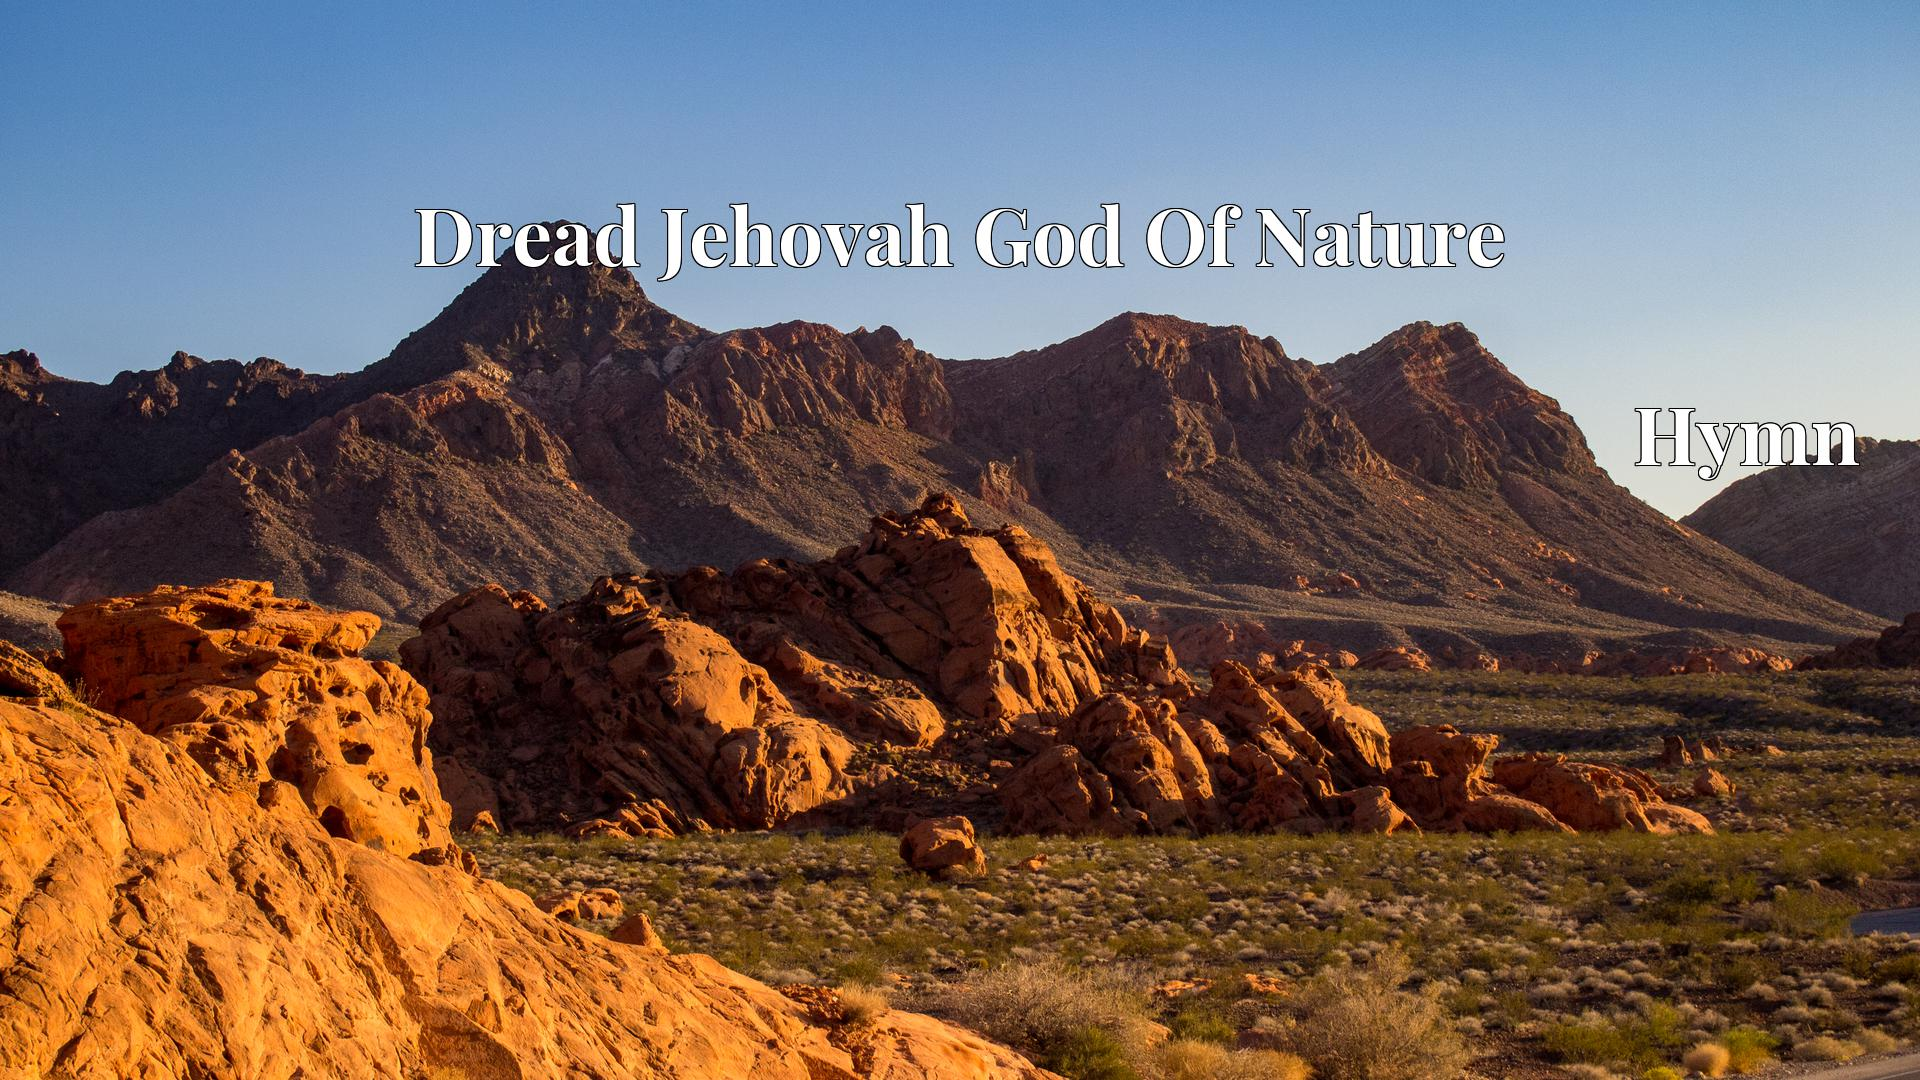 Dread Jehovah God Of Nature - Hymn